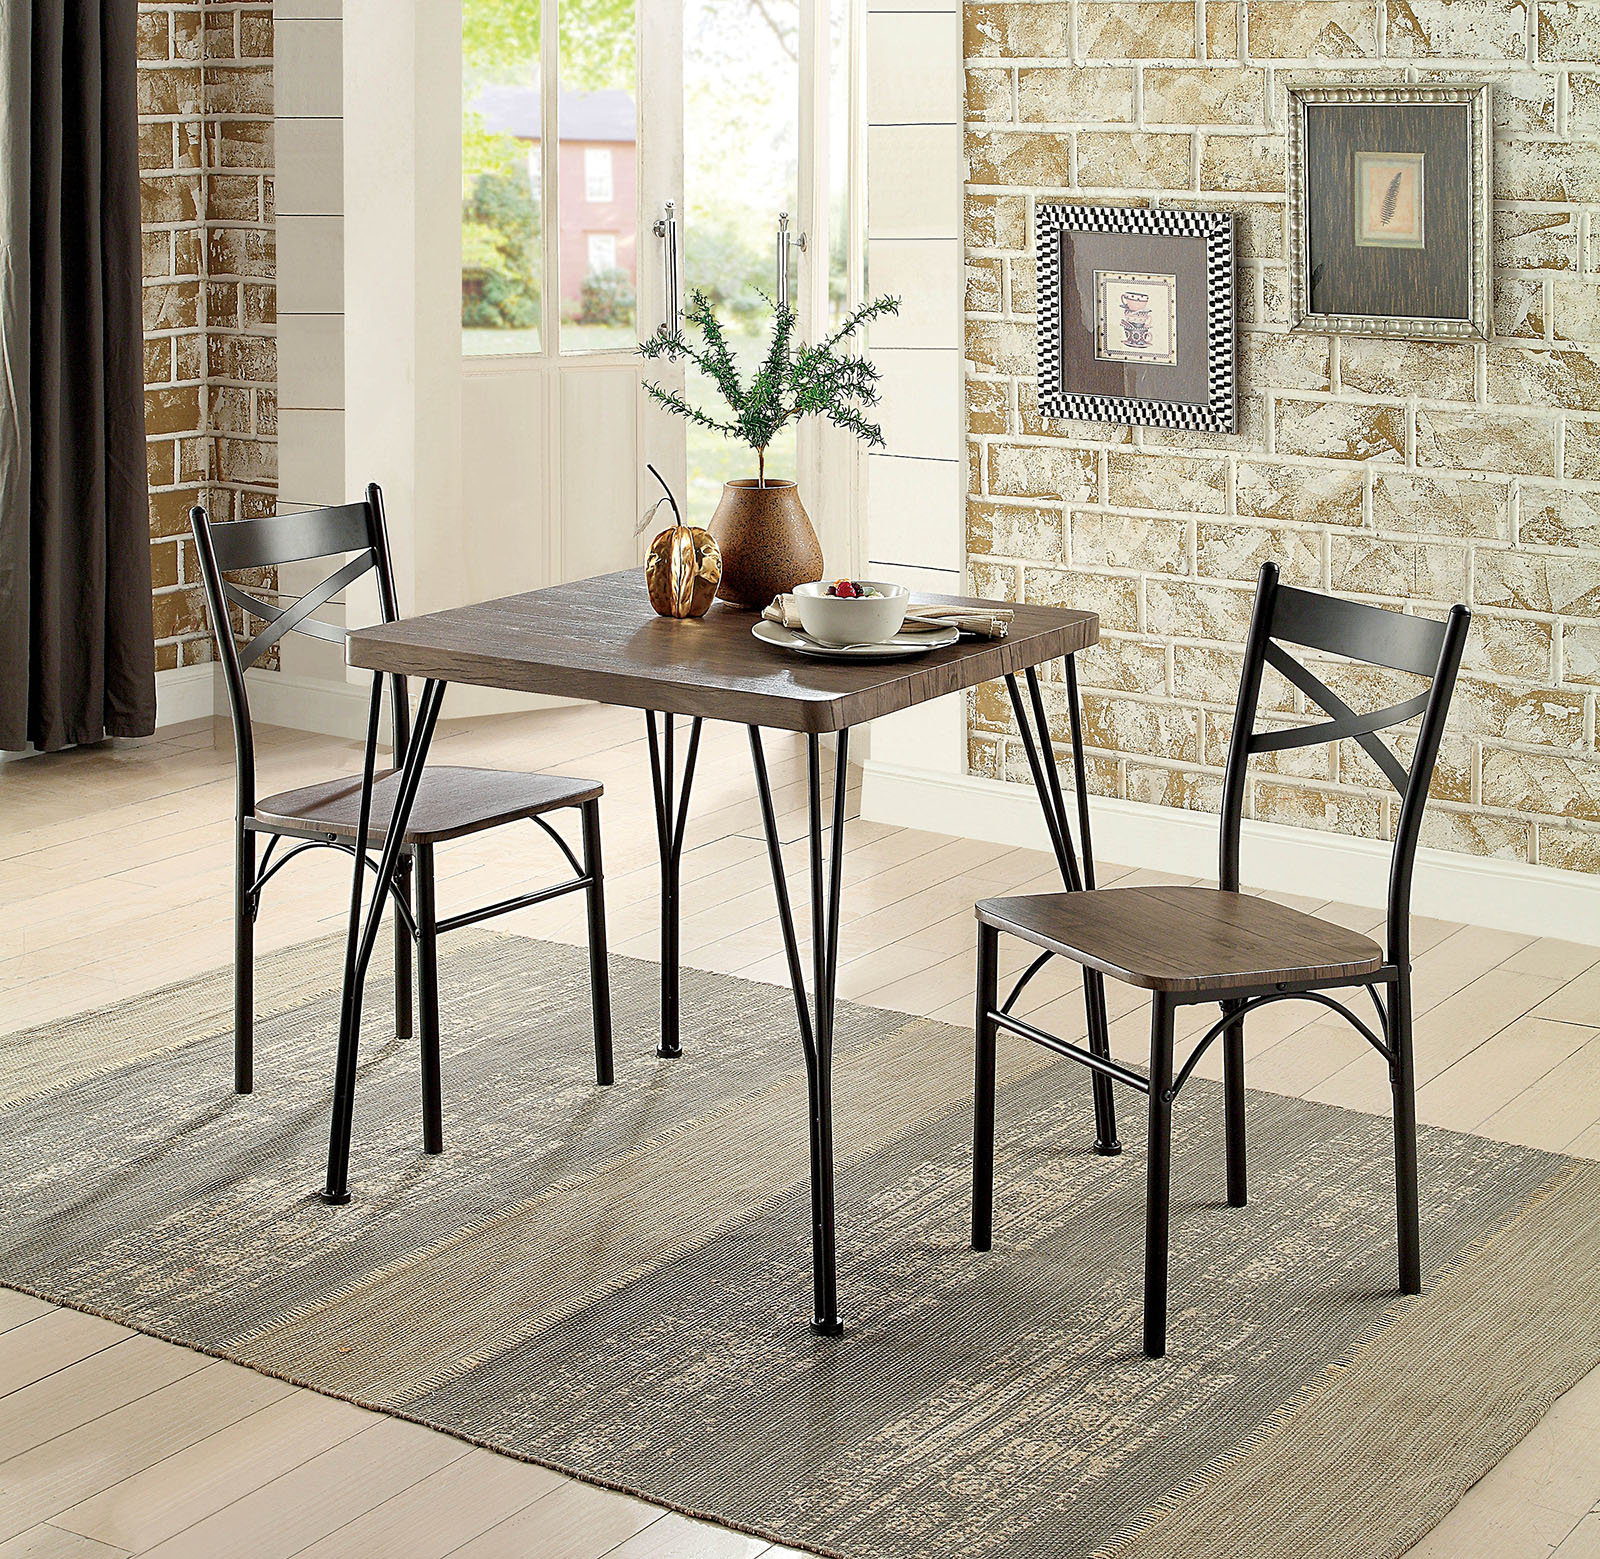 Inspiration about Widely Used Mulvey 5 Piece Dining Sets Intended For Williston Forge Deaton 3 Piece Dining Table Set 193256657231 (#9 of 20)